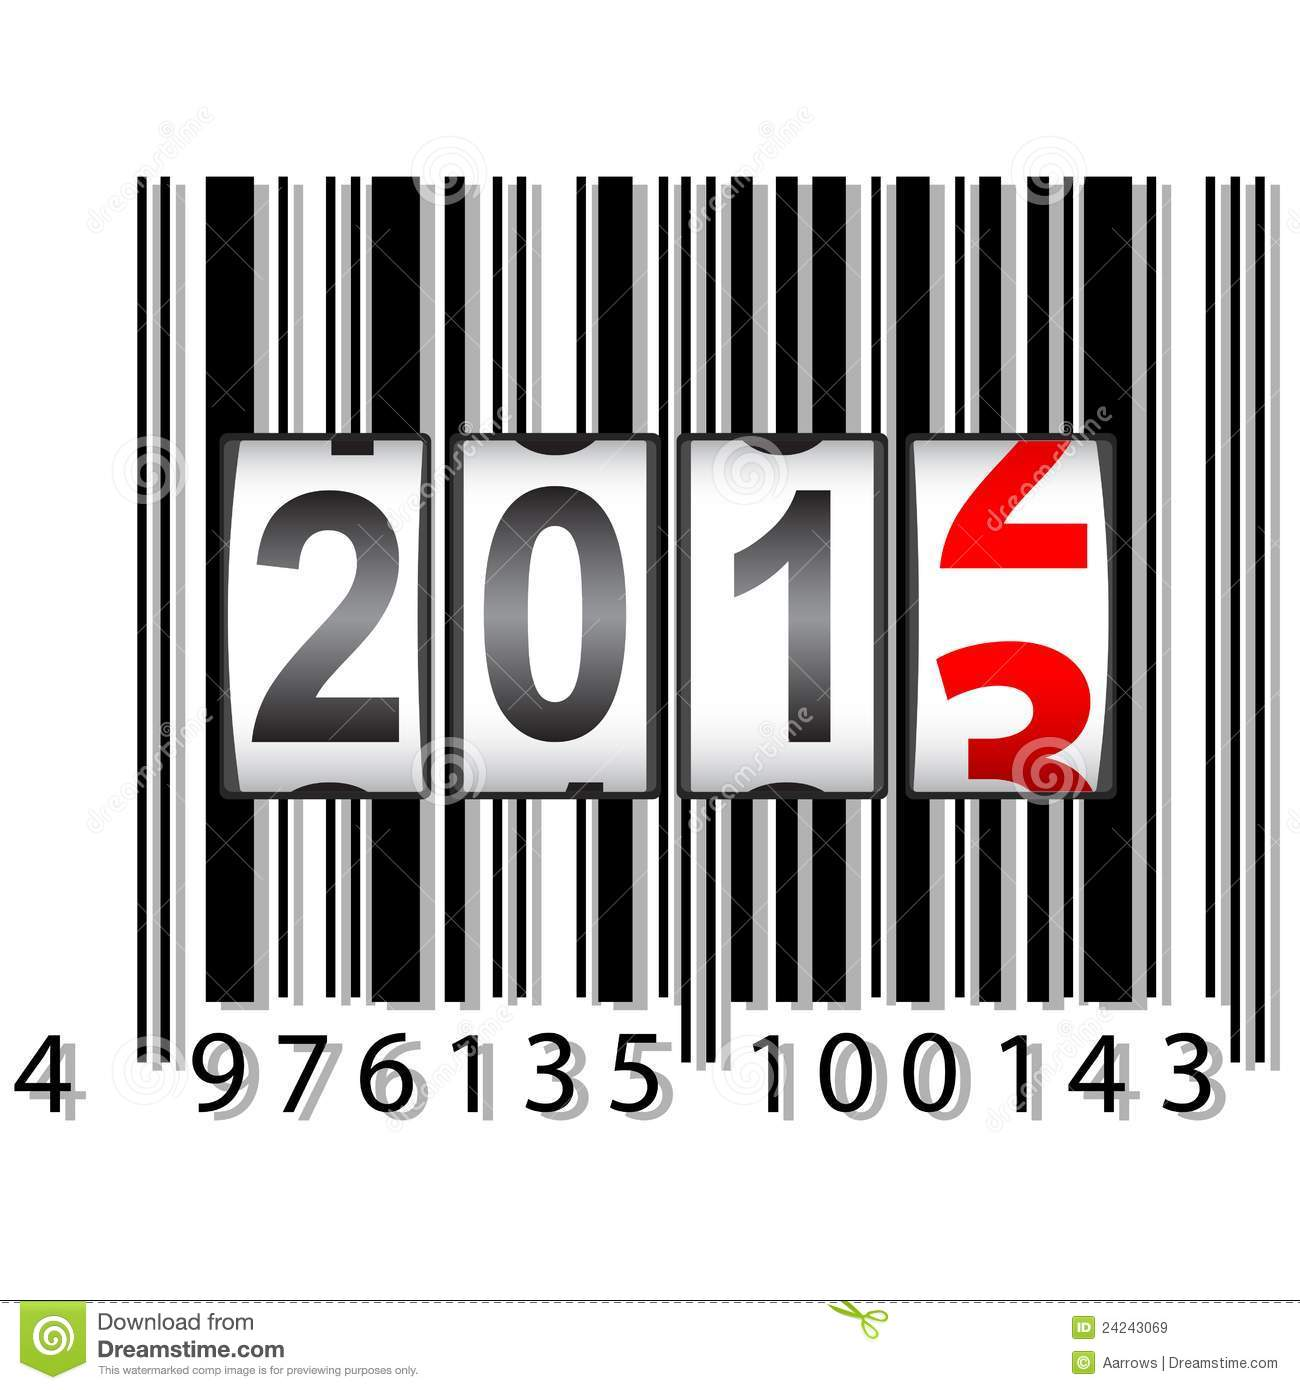 2013 New Year counter, barcode